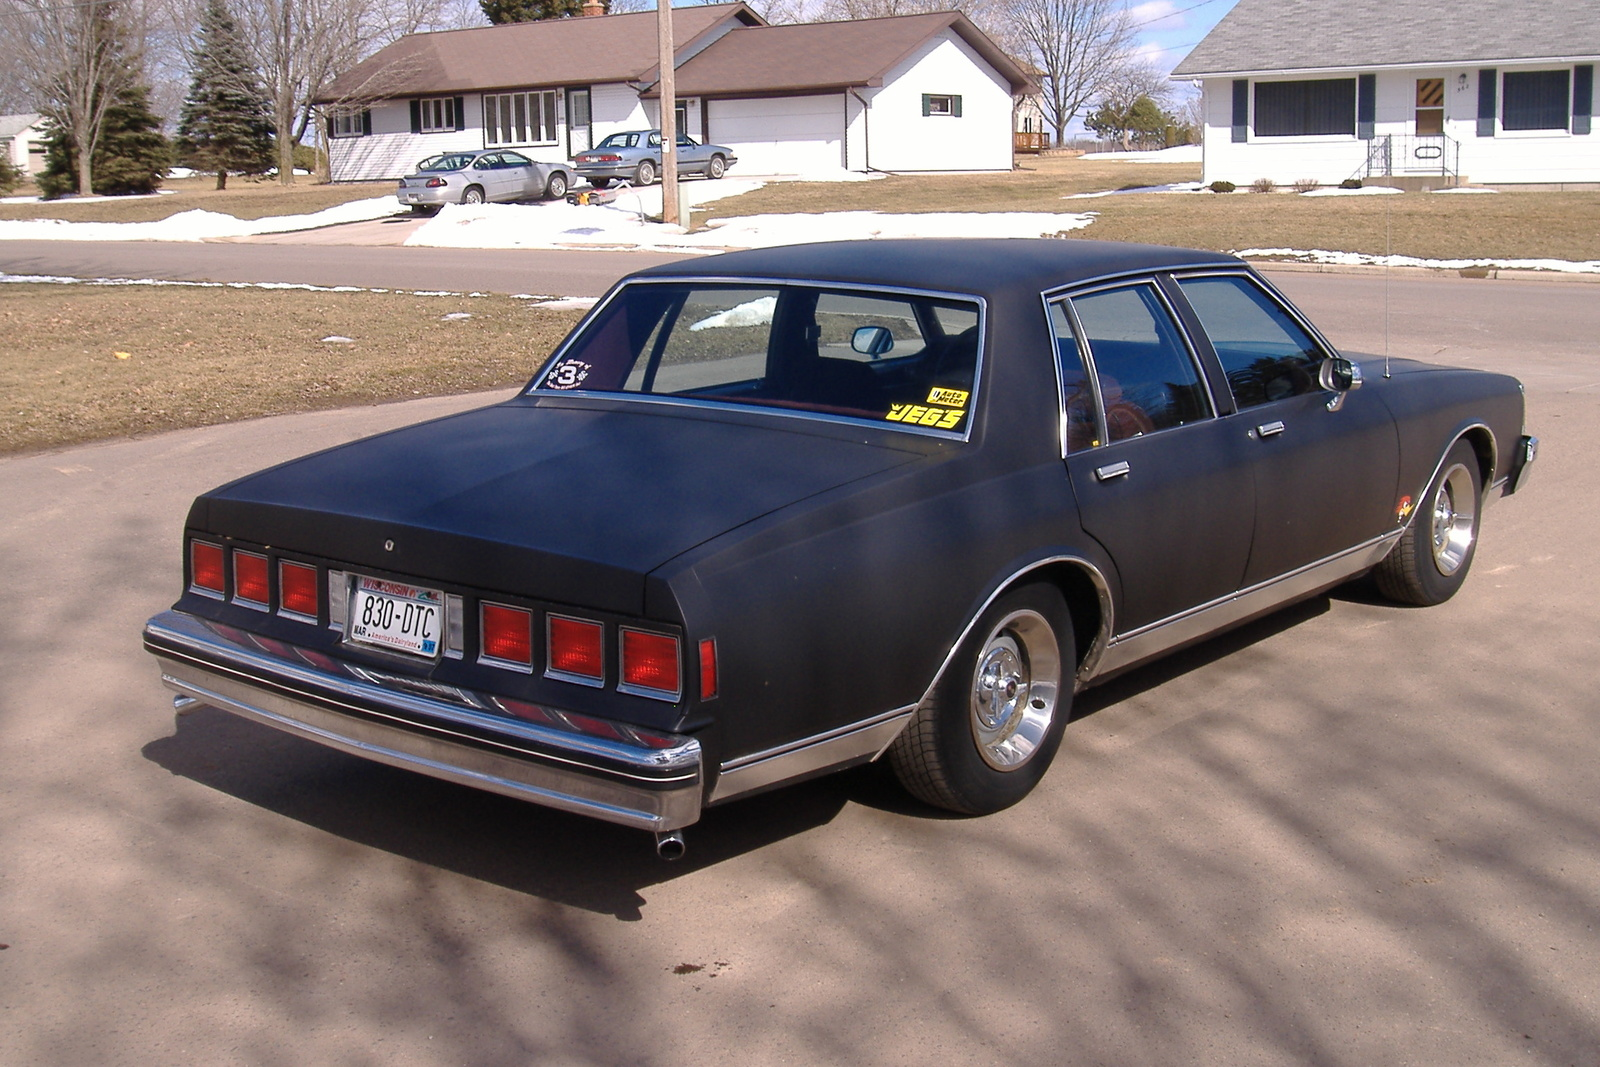 All Chevy chevy caprice 1985 : All Chevy » 1985 Chevy Caprice Parts - Old Chevy Photos Collection ...